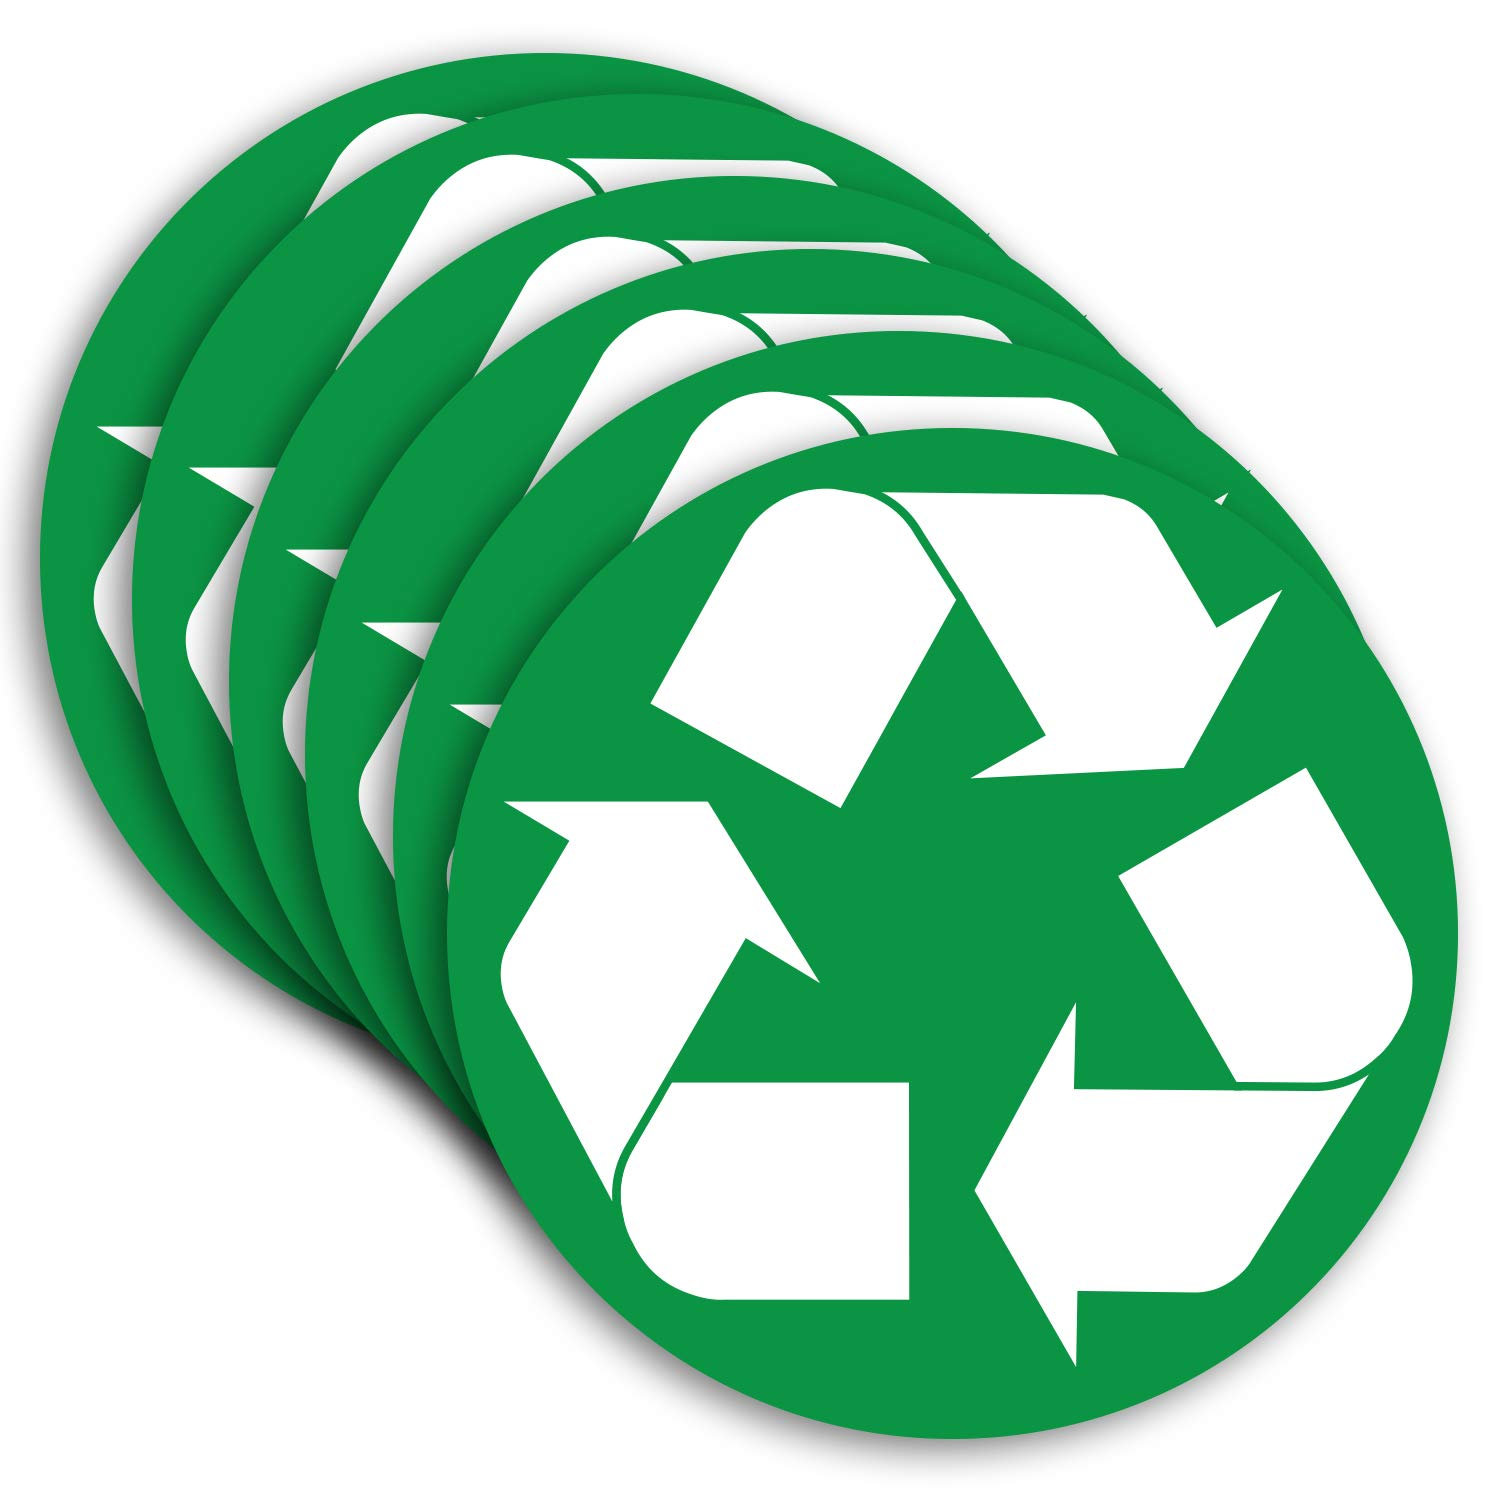 Amazon Recycle Sticker For Trash Can Bins Sign Decal 6 Pack